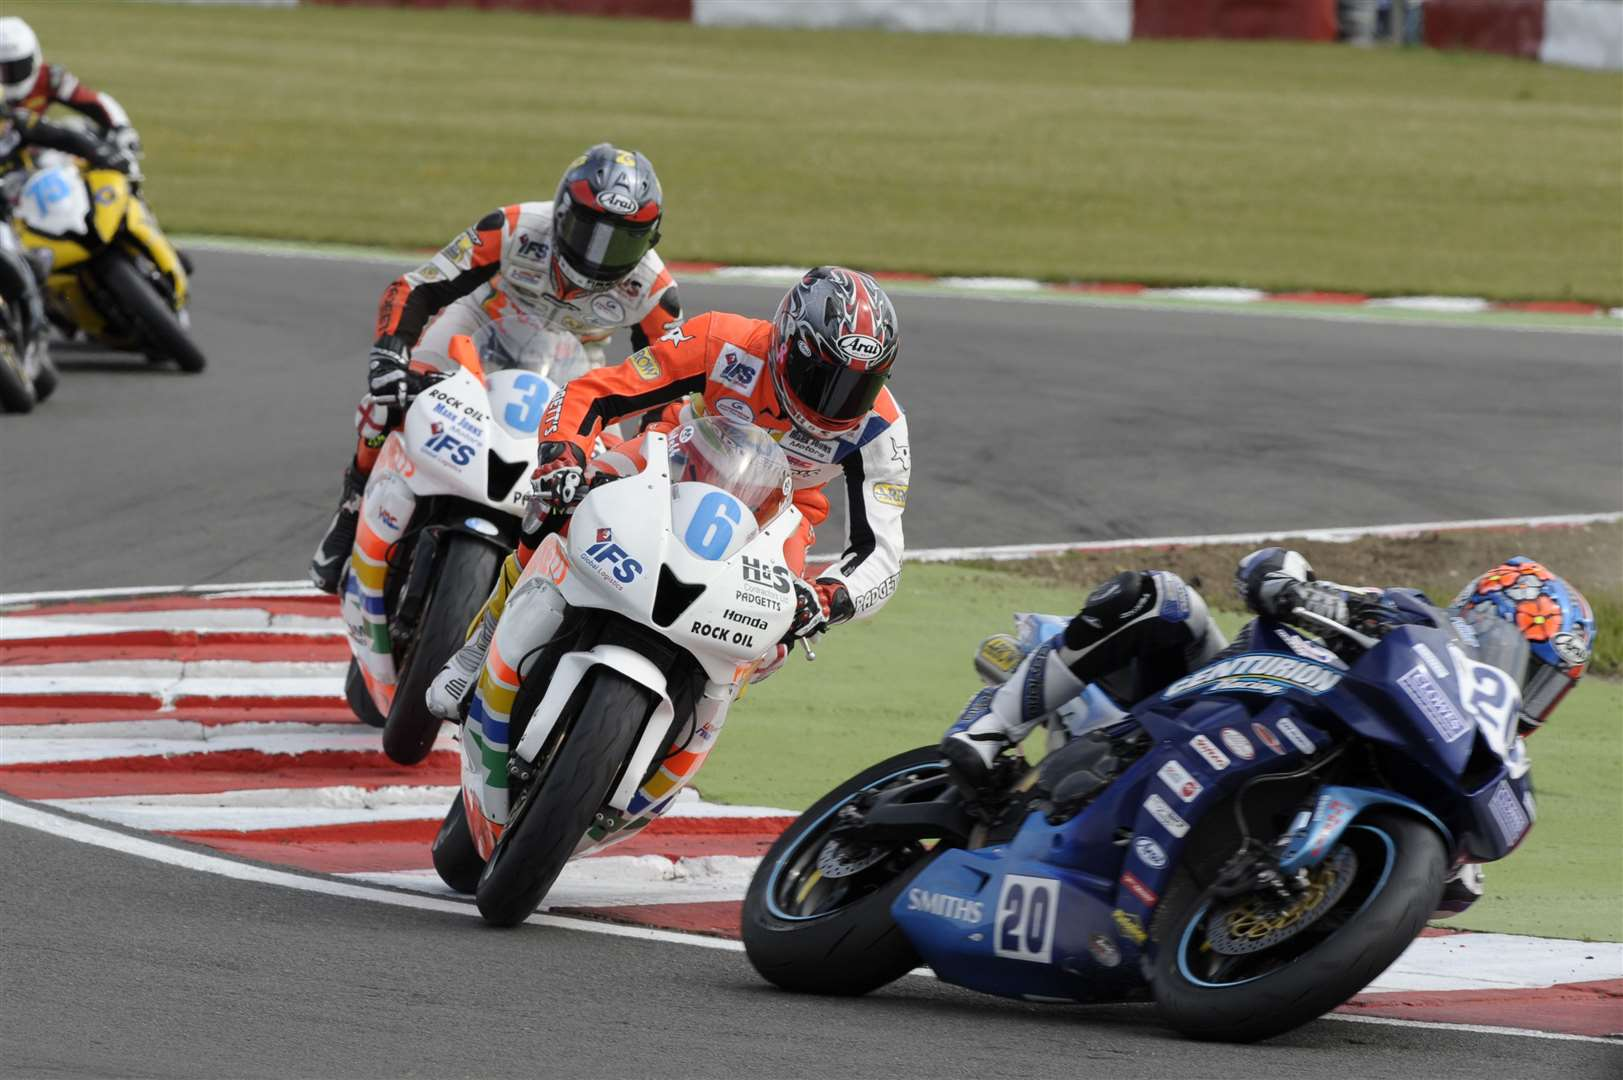 ViSK British Superbikes Championship round 5, from Snetterton Circuit, Norfolk. Picture: Andy Payton/PSP